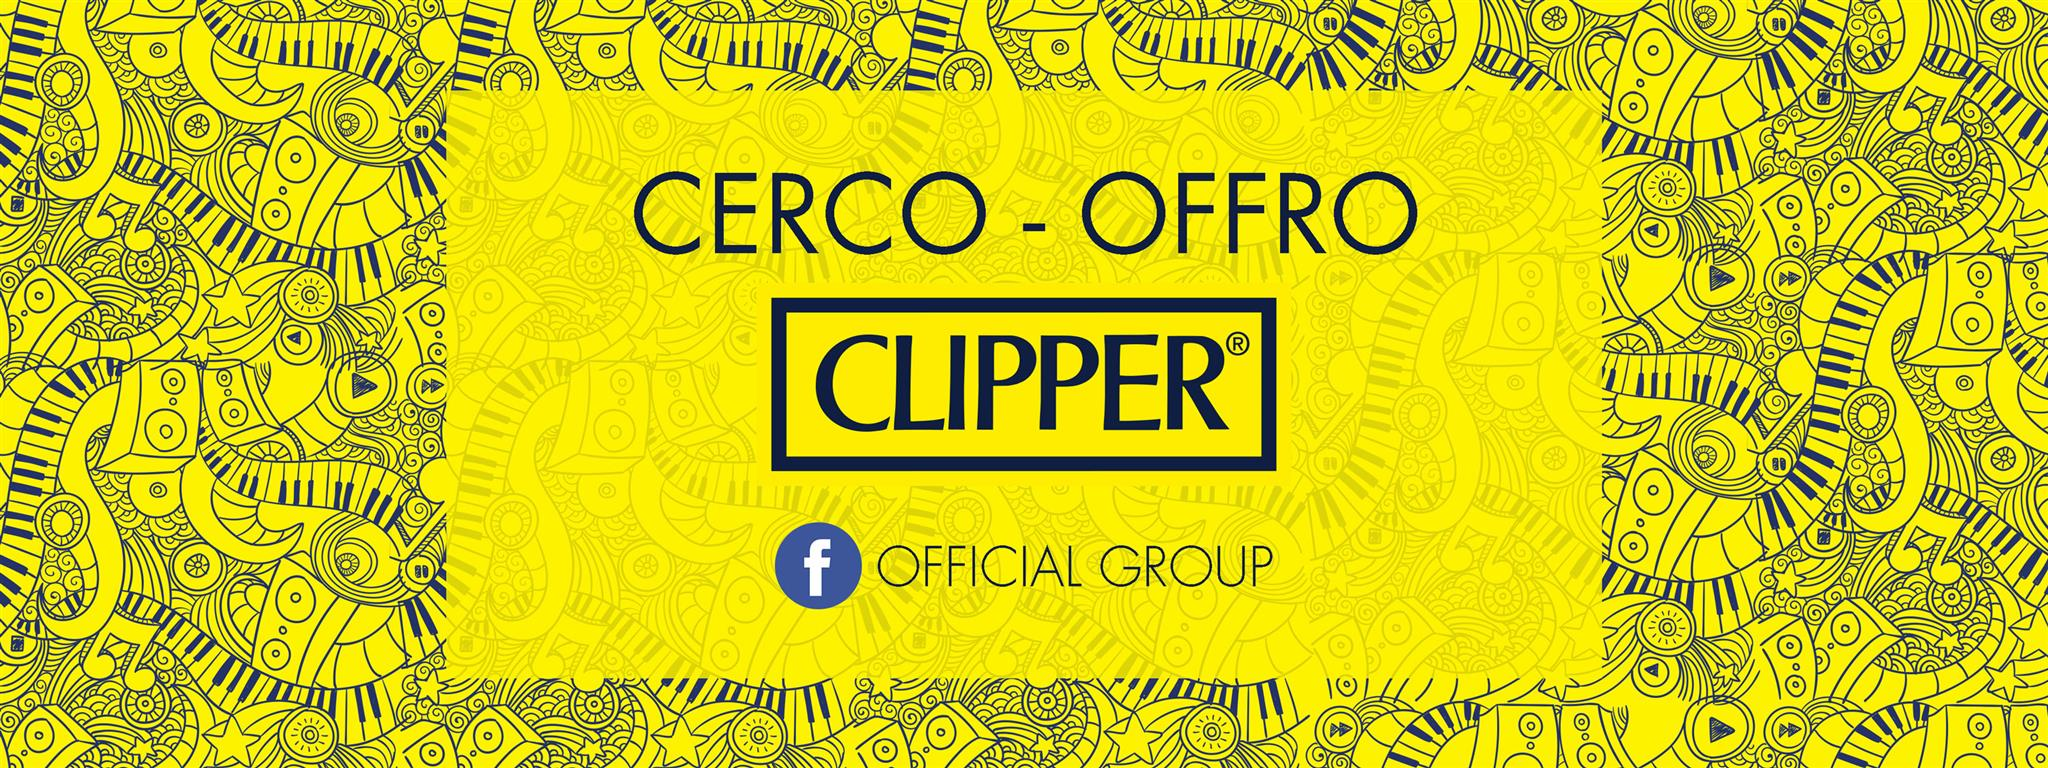 Cerco offro clipper the official facebook group for Cerco sito internet